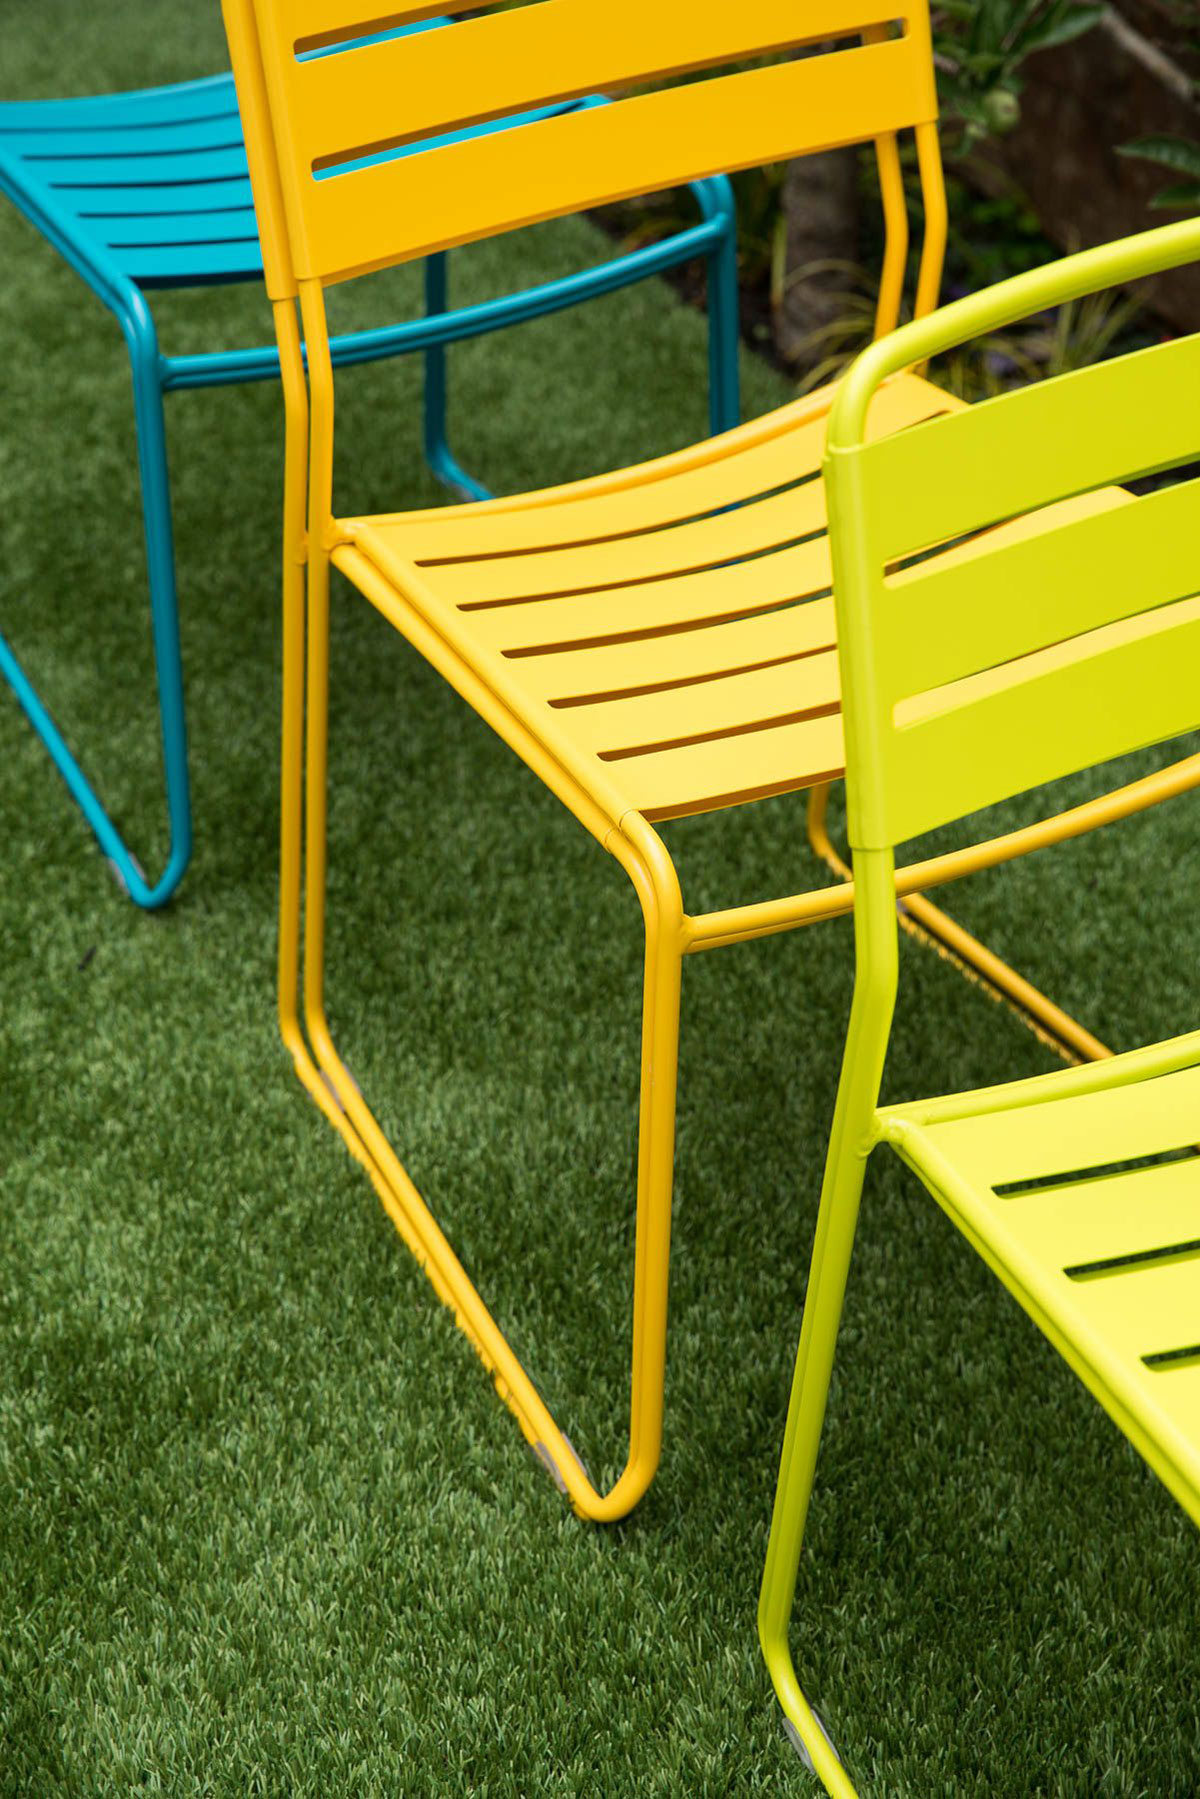 Colorful foldable chairs on lawn